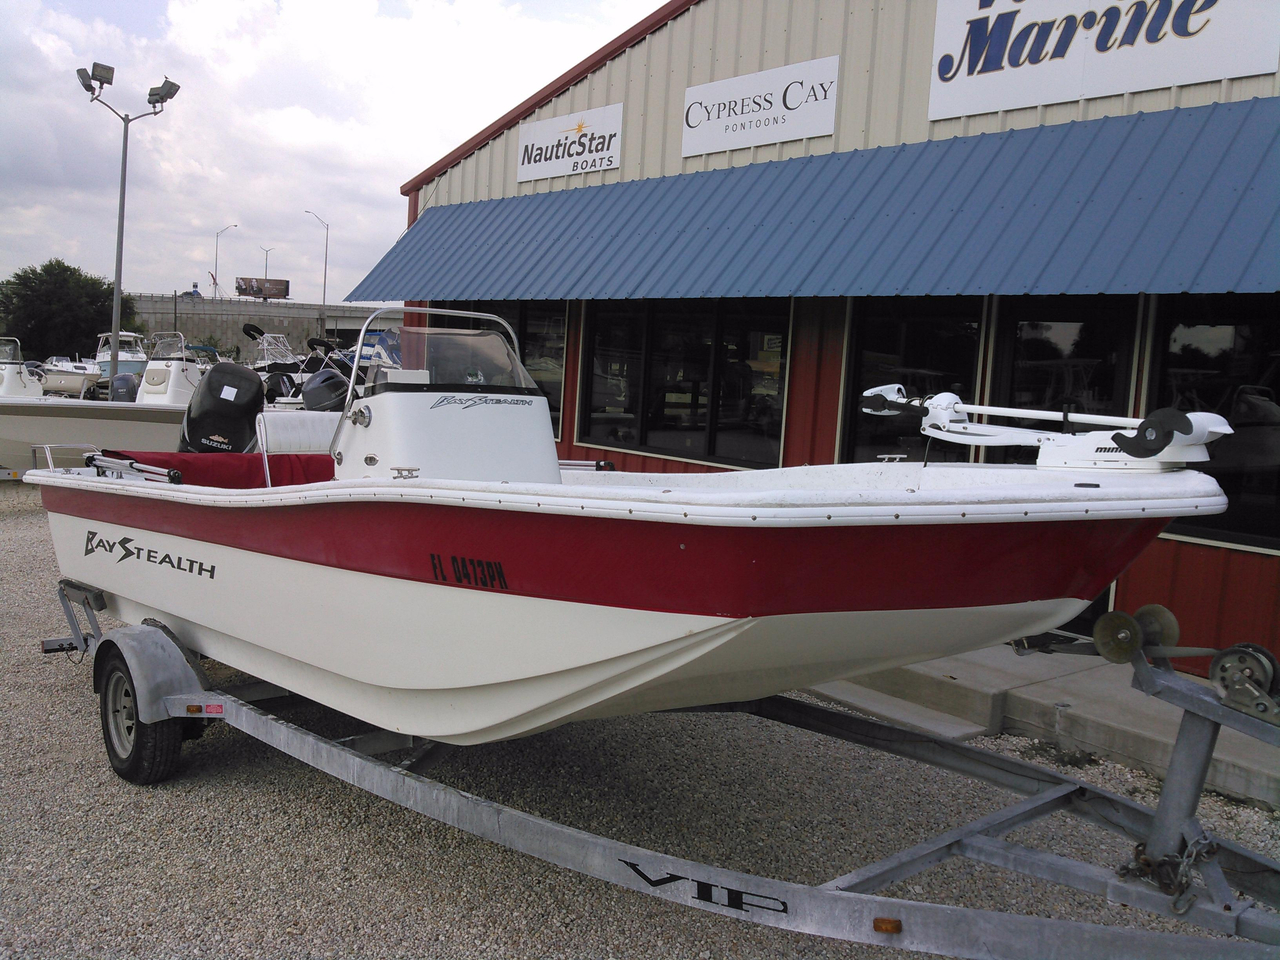 2008 used bay stealth 2194 skiff flats fishing boat for for Flats fishing boats